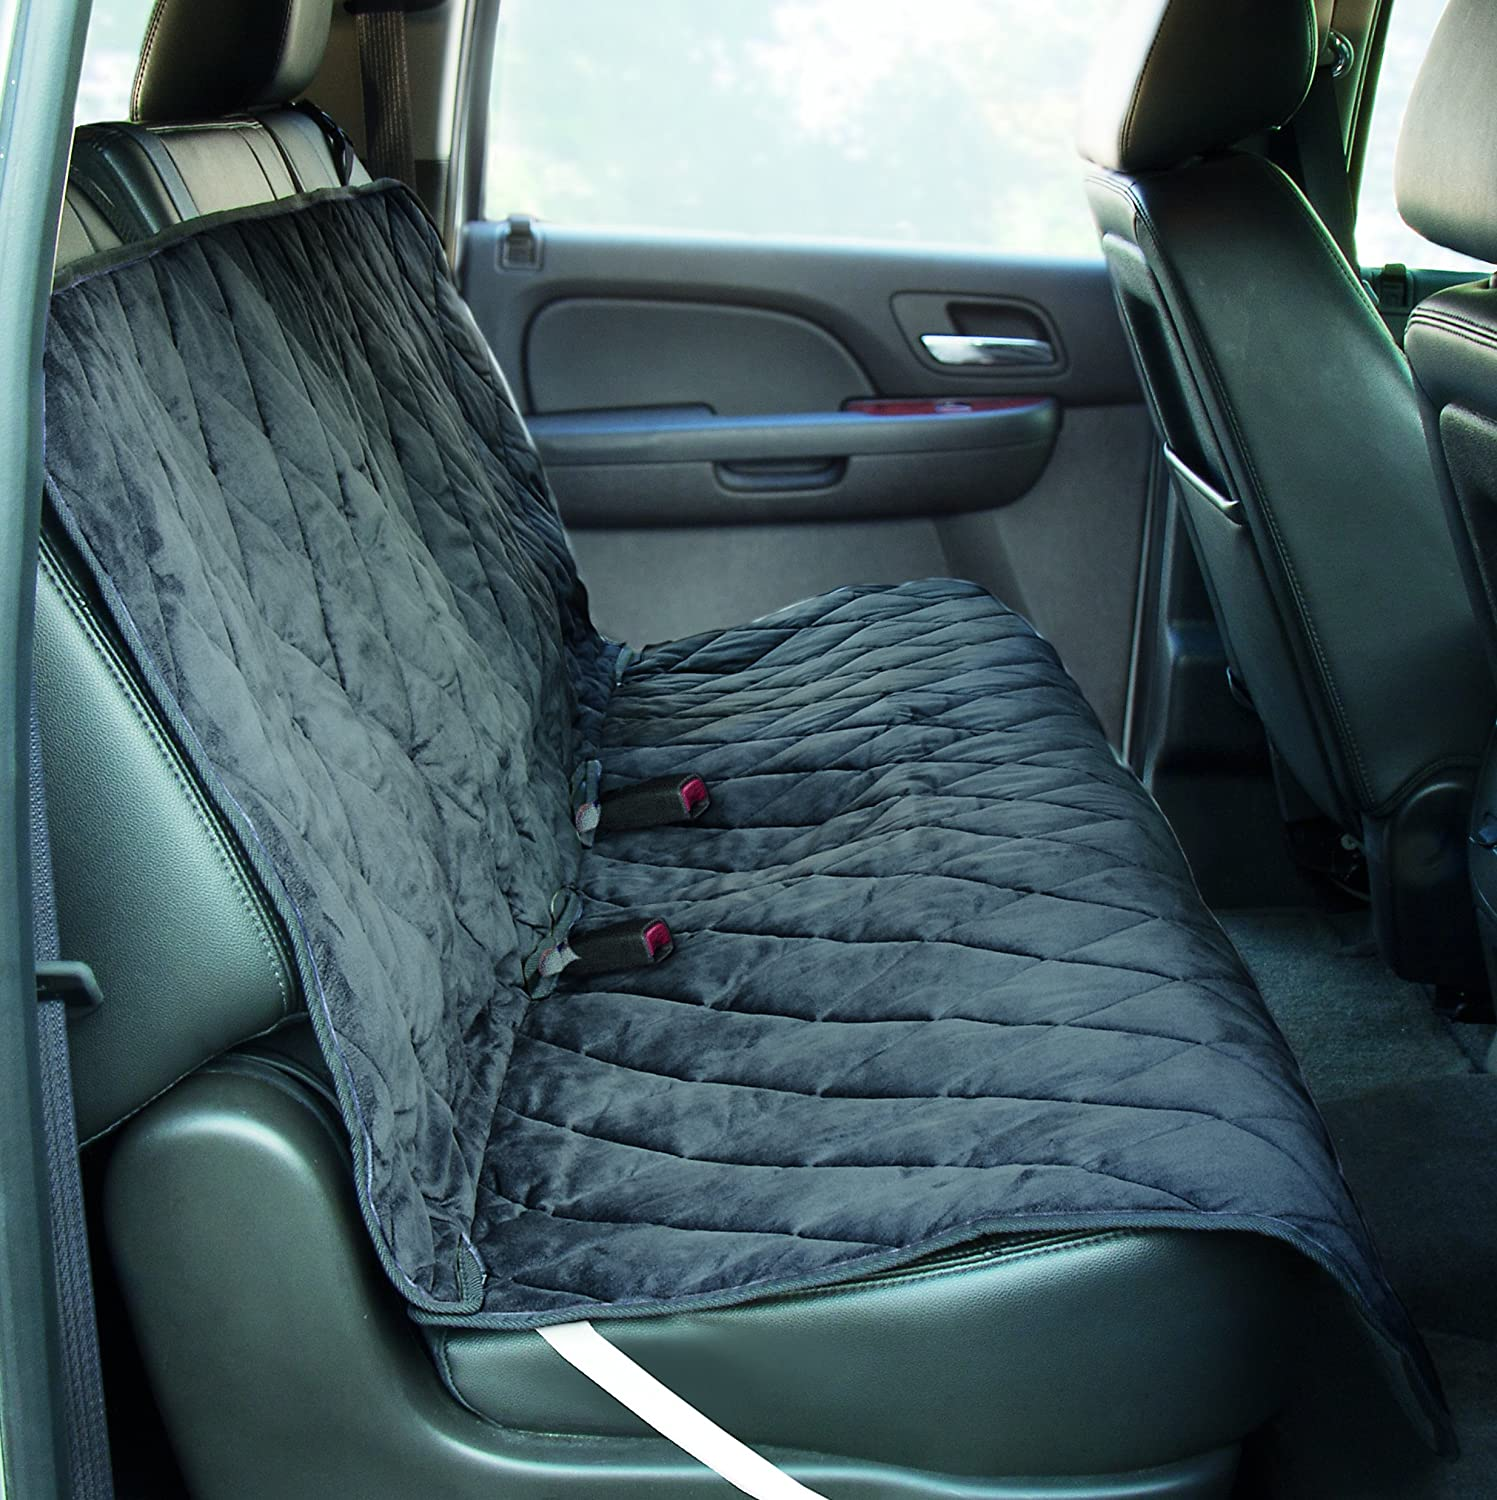 Amazon.com : Yes Pets Quilt Suede, Waterproof, Tear Proof Bench ... : quilted car seats - Adamdwight.com